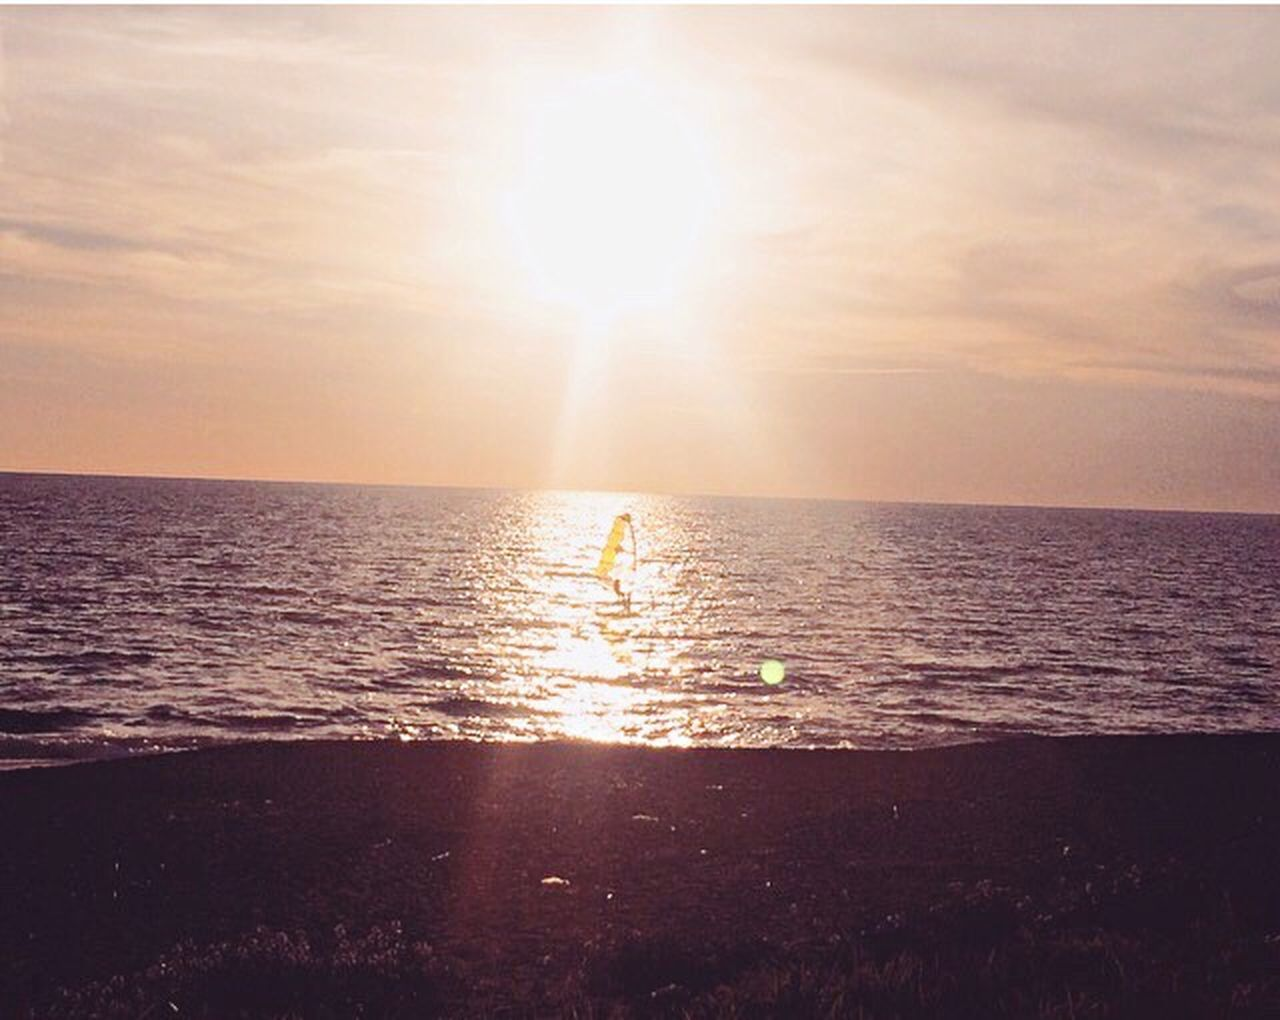 Day Sunlight Sea Sun Sunset Nature Horizon Over Water Water Real People Sunbeam Two People Sky Scenics Outdoors Beauty In Nature Beach People Reflection Reflections Sunset_collection Sunset Silhouettes Windsurfing Air Feeling Thankful Rome Italy